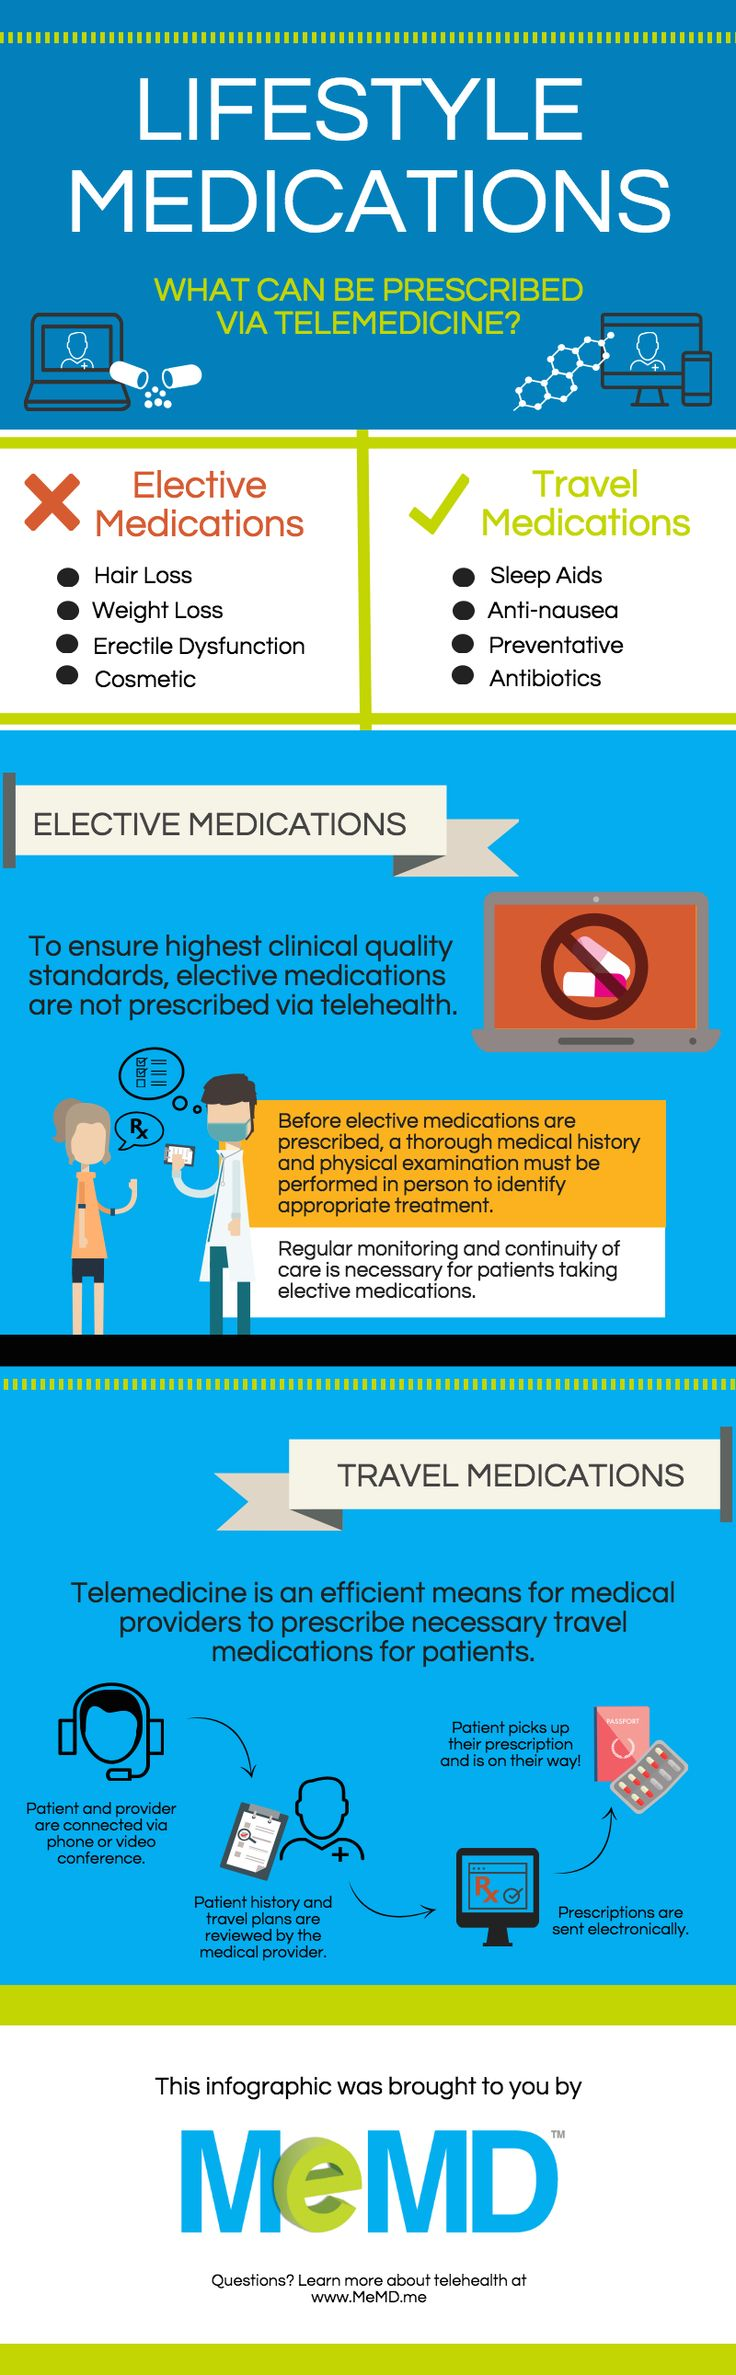 Is it ever appropriate to prescribe lifestyle medications via telemedicine? Check out this infographic that illustrates what can be prescribed via telemedicine.